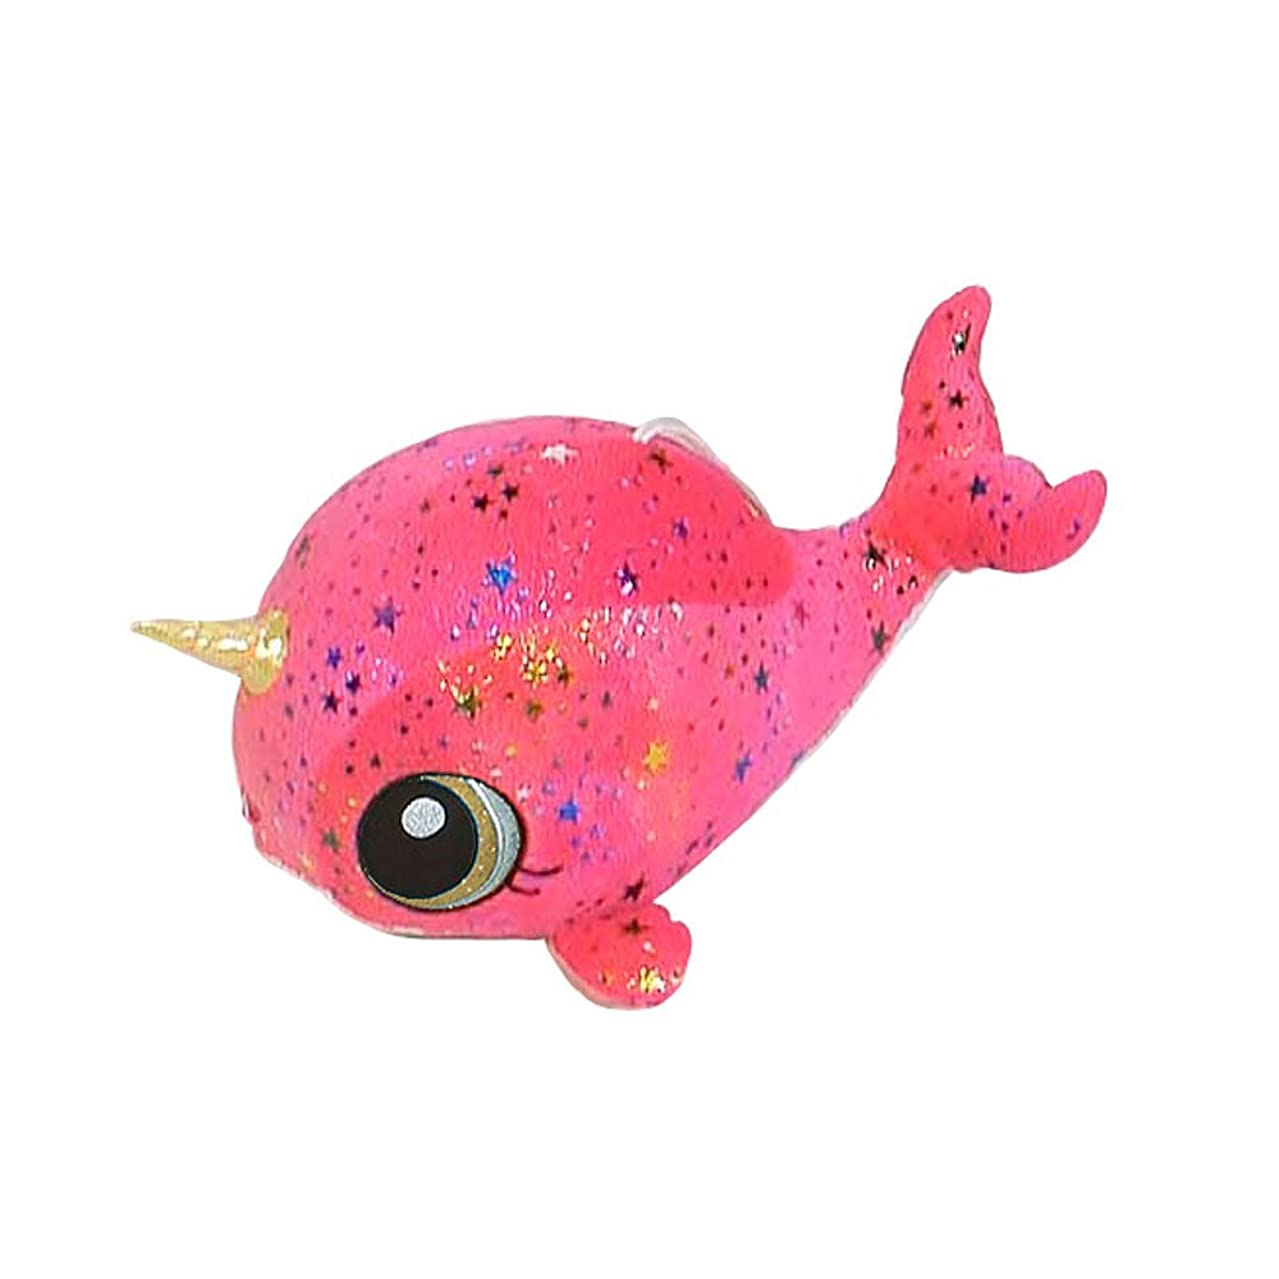 Fiesta Toys Pink Moon Glow Sparkle Rainbow Narwhal Plush Stuffed Animal Toy - 11 Inches